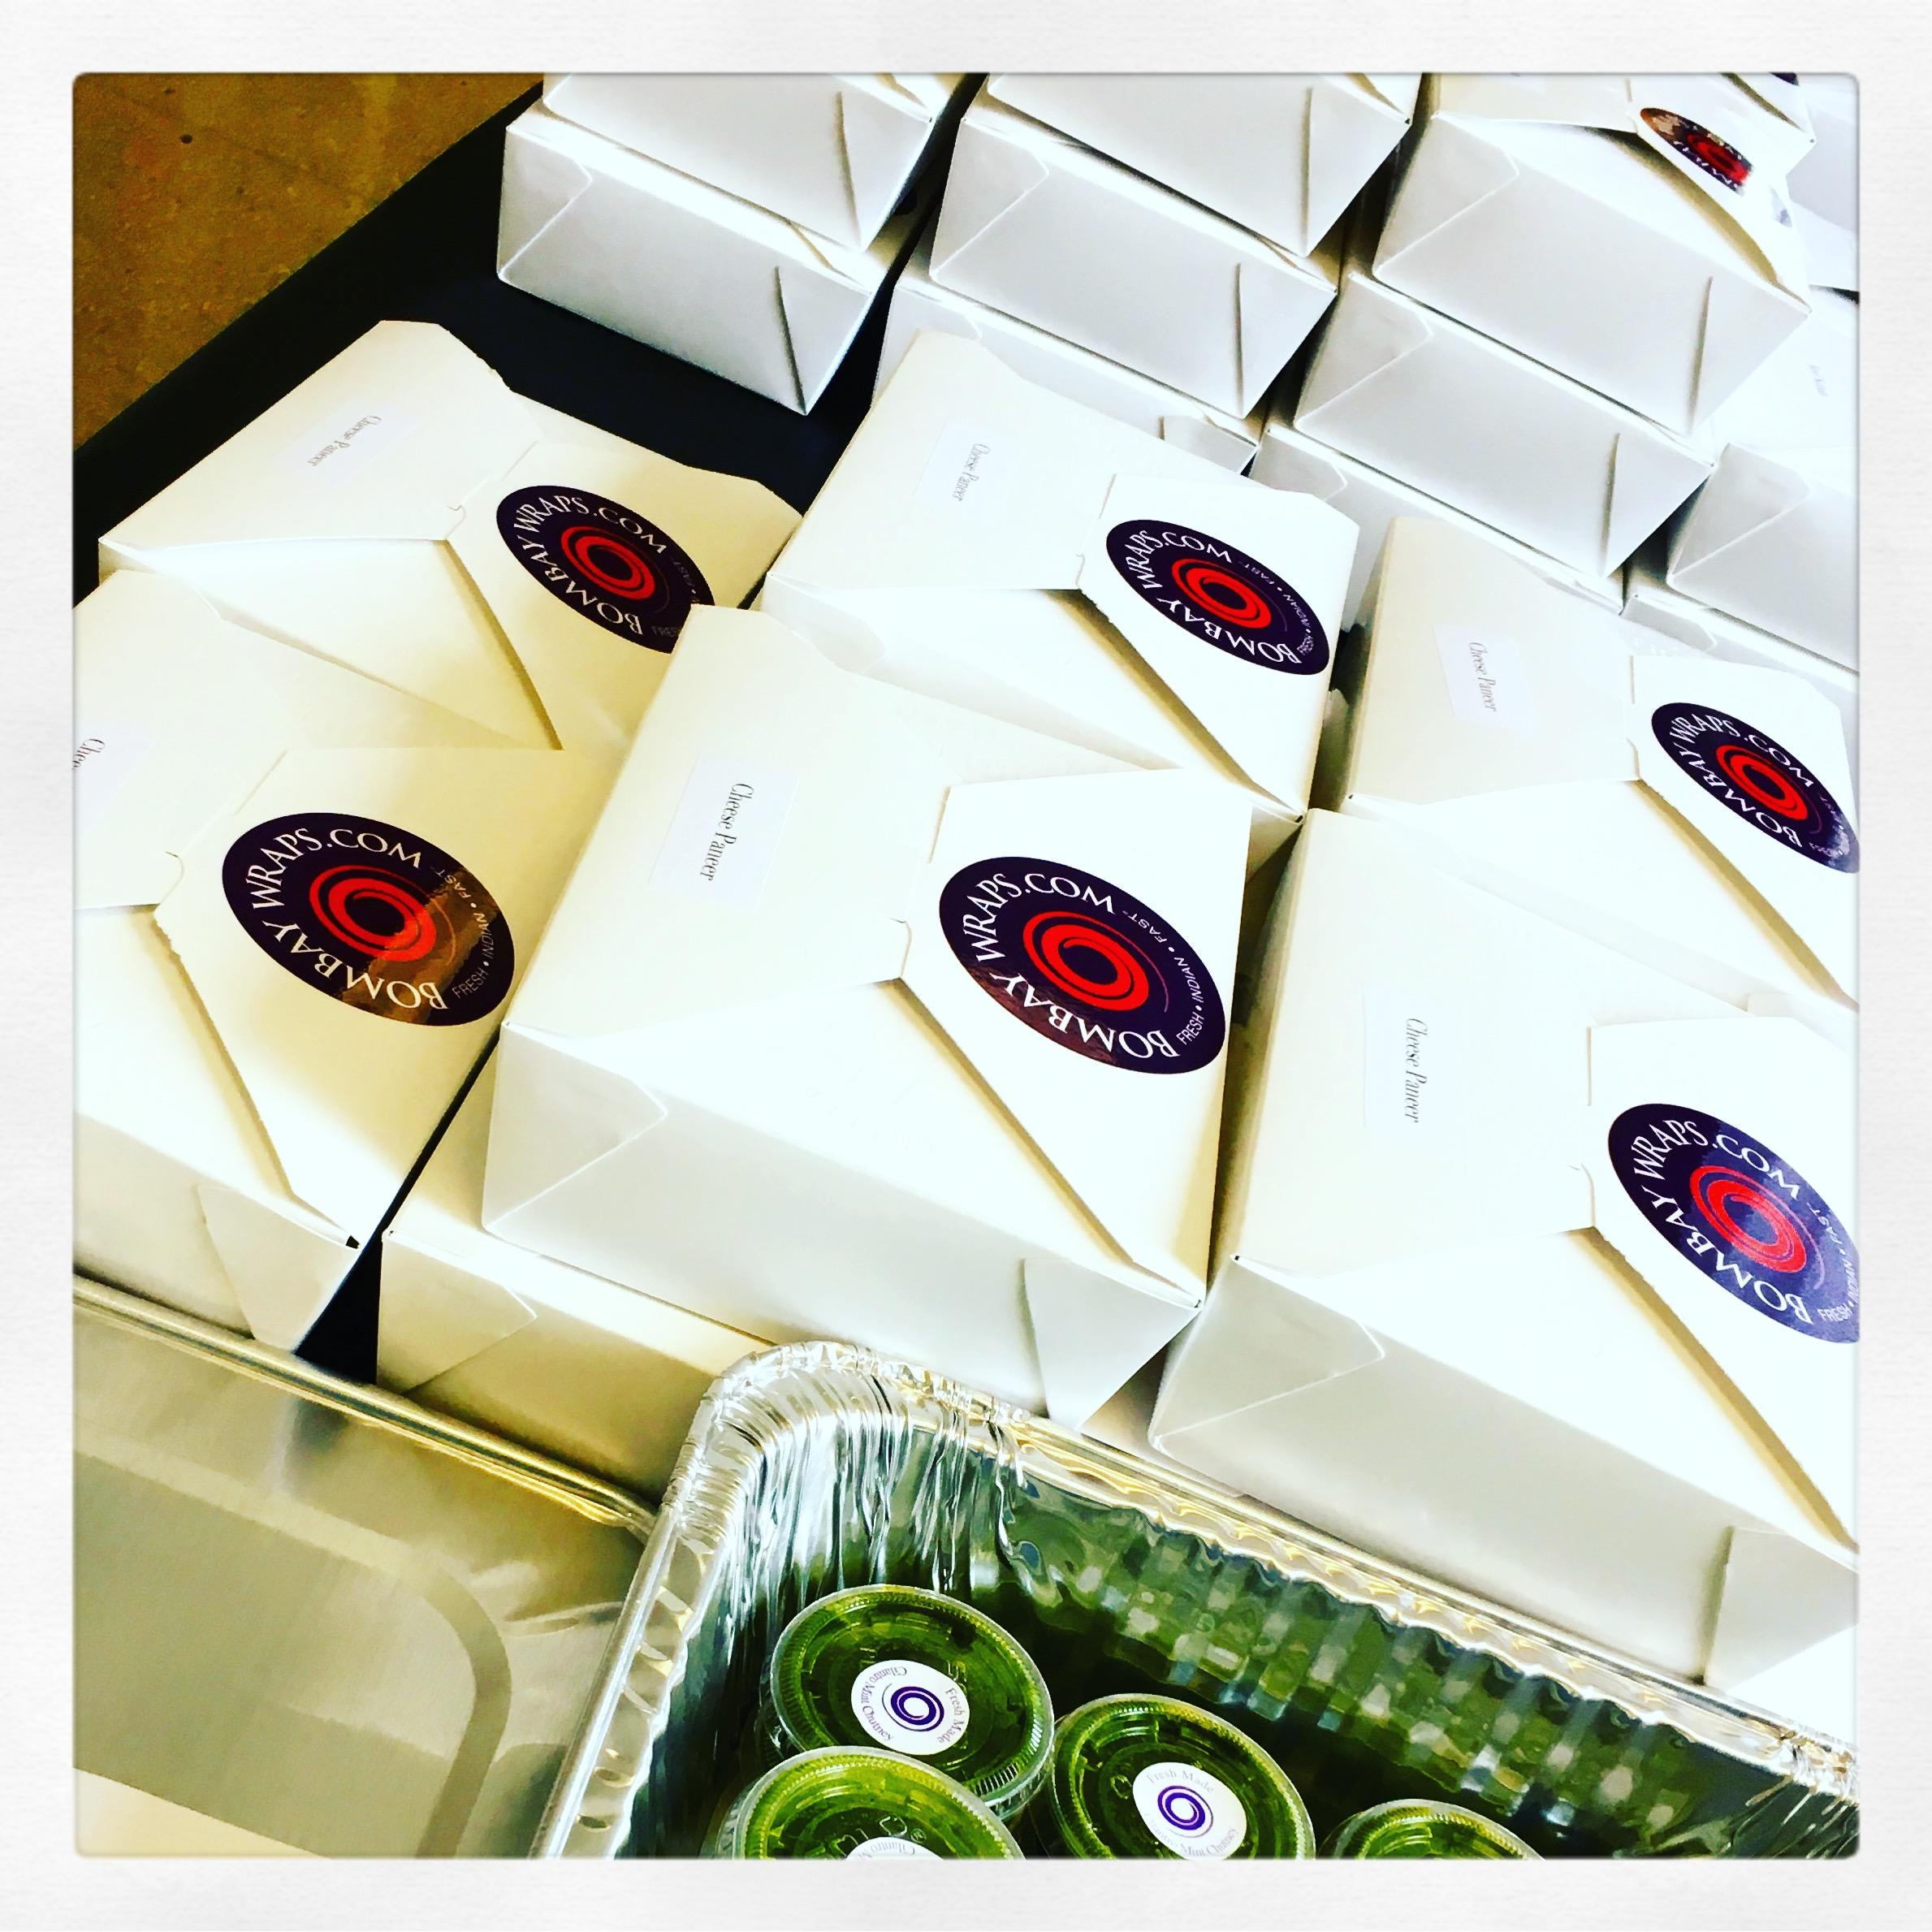 Your lunch is ready to go, courtesy BW Box Lunch offering at Bombay Wraps